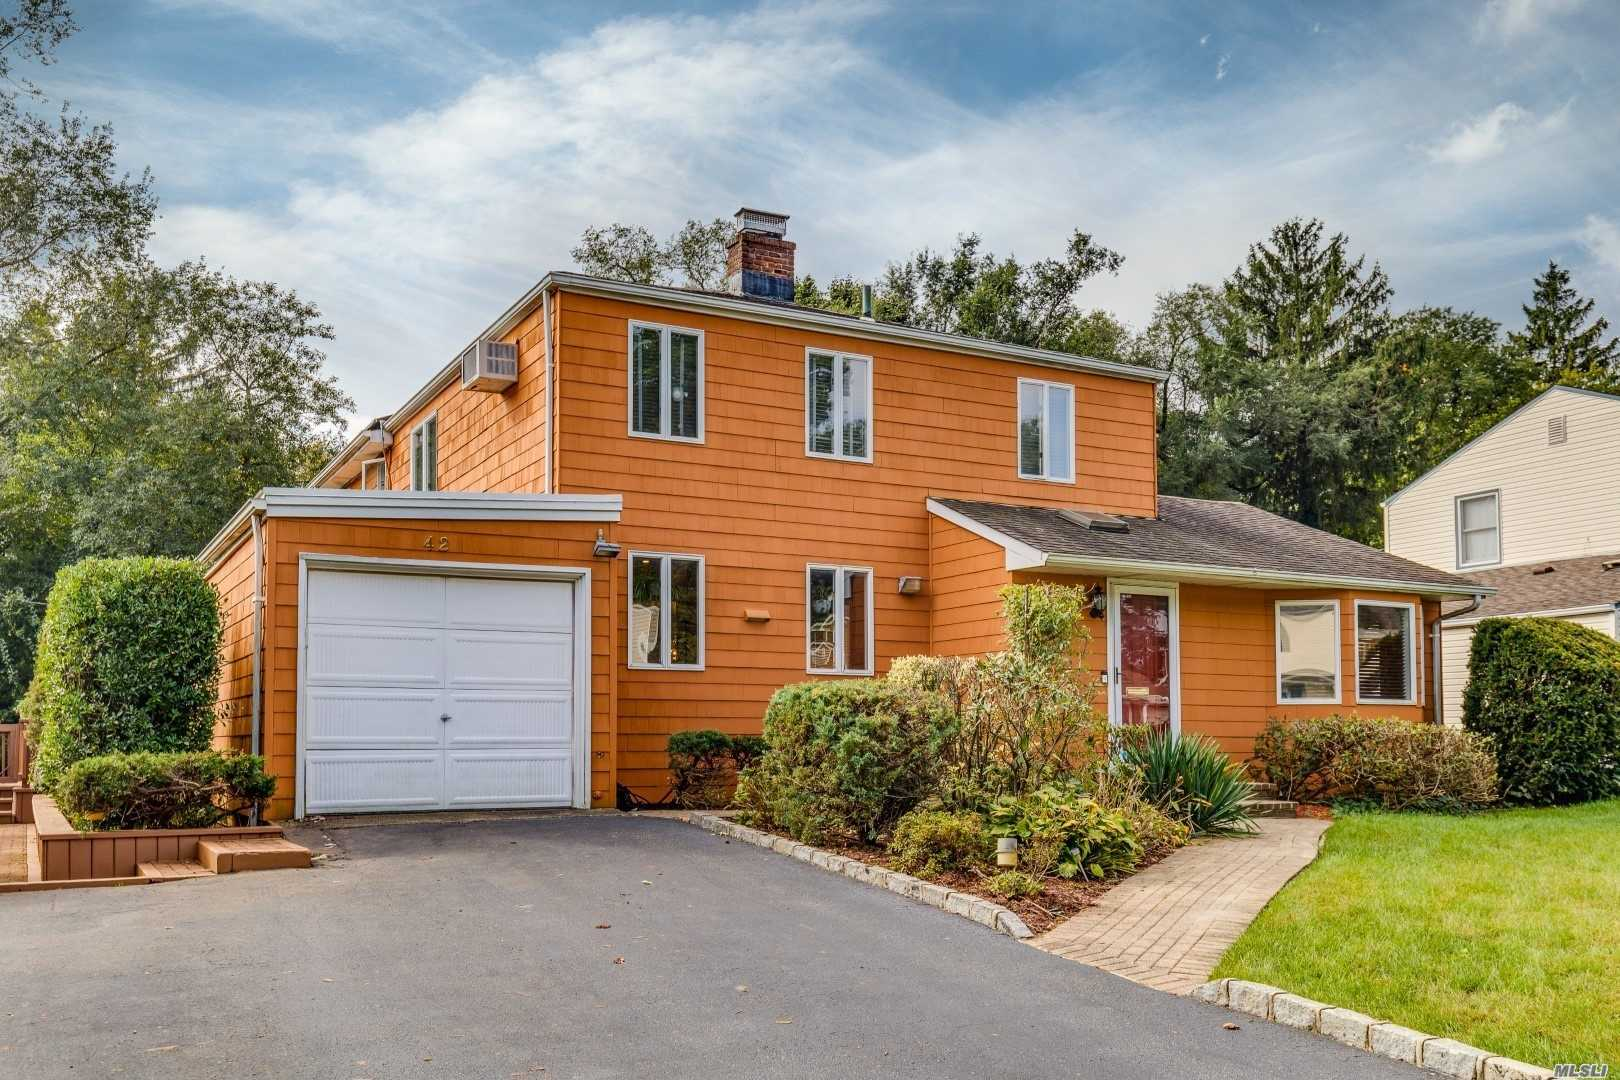 Spacious And Bright Expanded Colonial Is Set On Beautiful Property With Desirable Roslyn Schools. Open Floor Plan Designed To Accommodate Five Bedrooms If Needed. Sliding Door Opens To Rear Wrap Around Deck Expanding Your Life To The Outdoors. Location, Value And Space Makes This Home A Must See, Call Today.